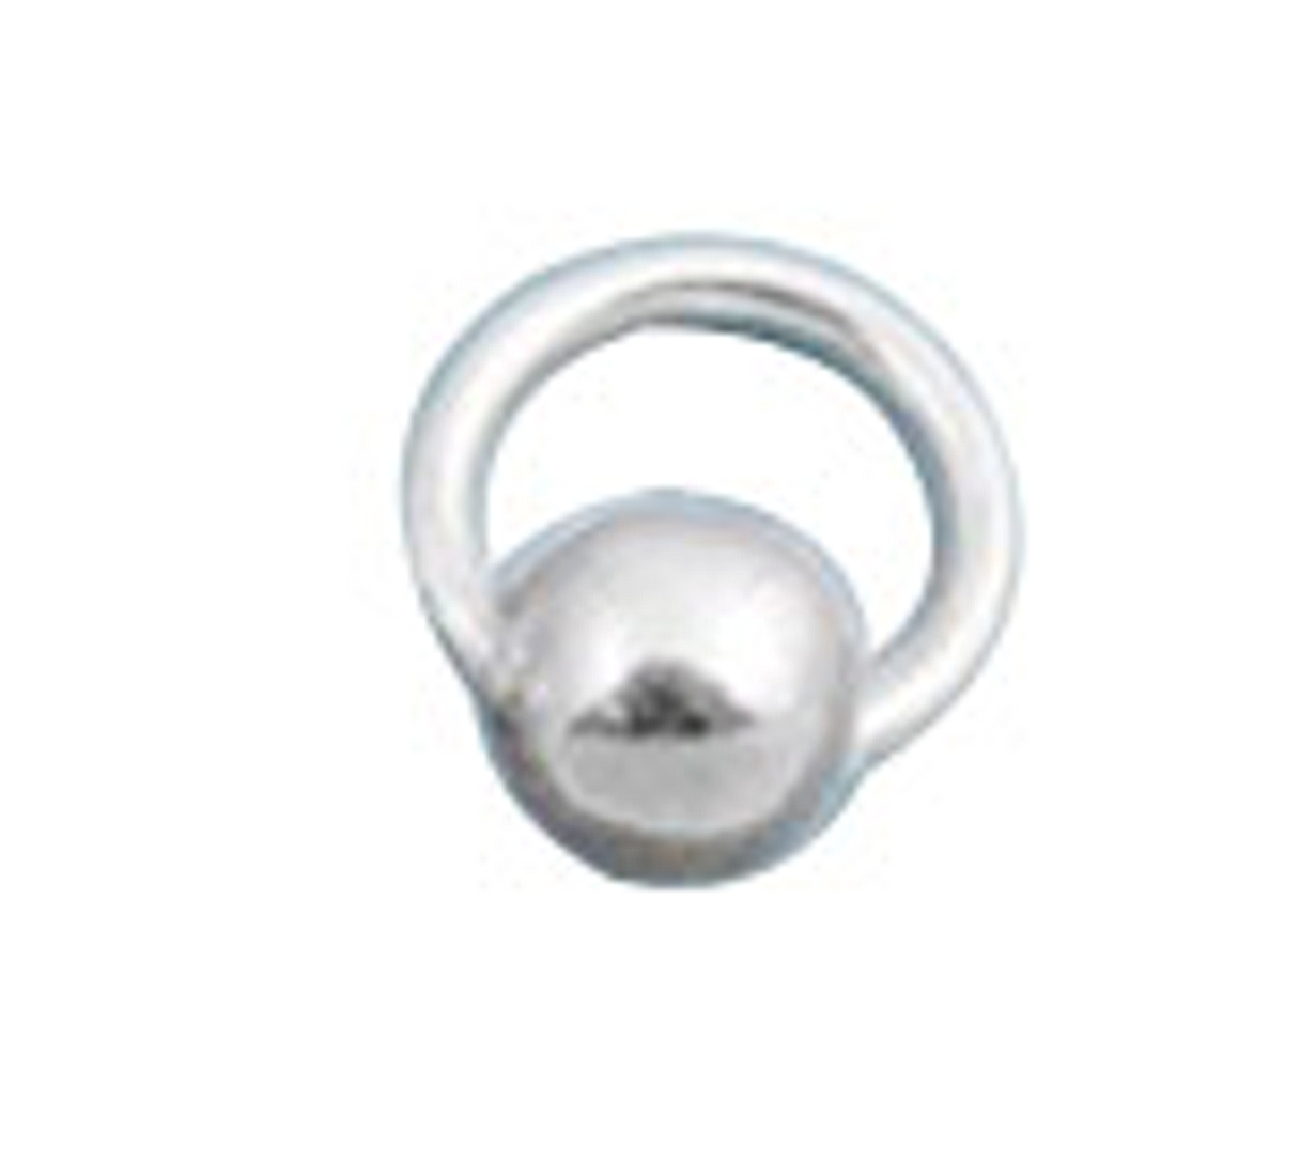 8mm Pierced Ball Charm Wire Band Nose Ring